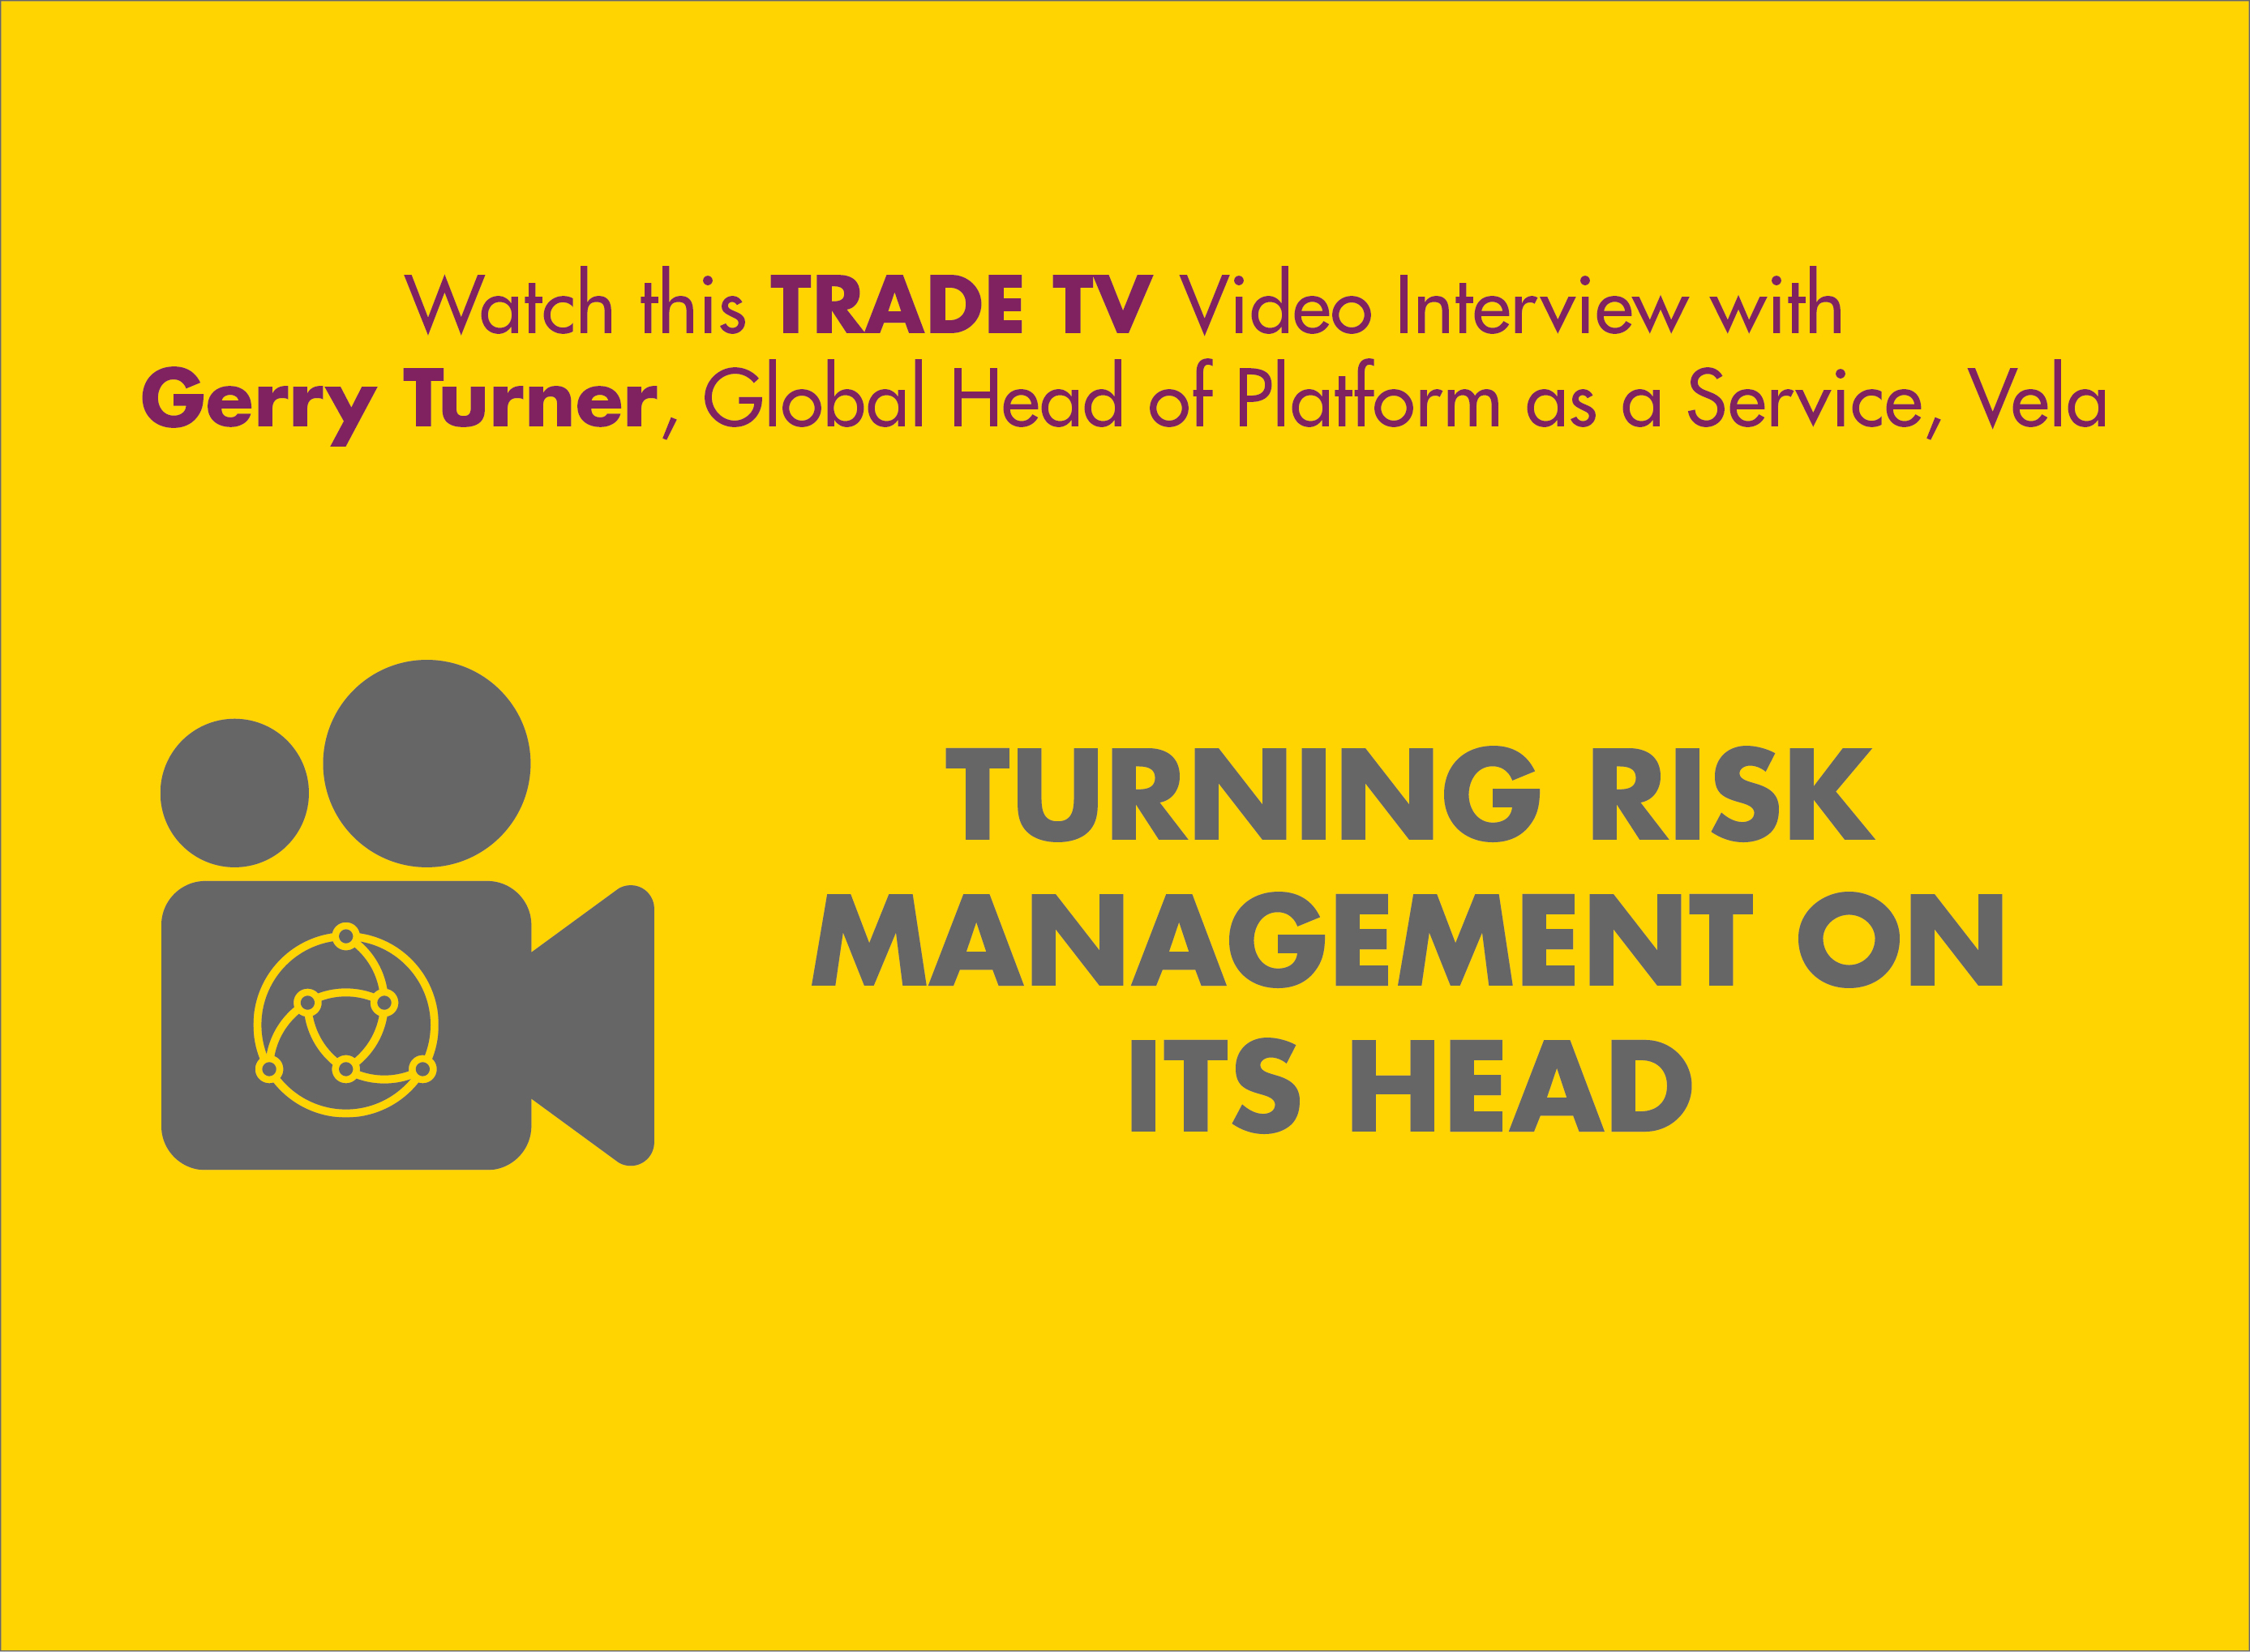 Turning Risk Management on its Head